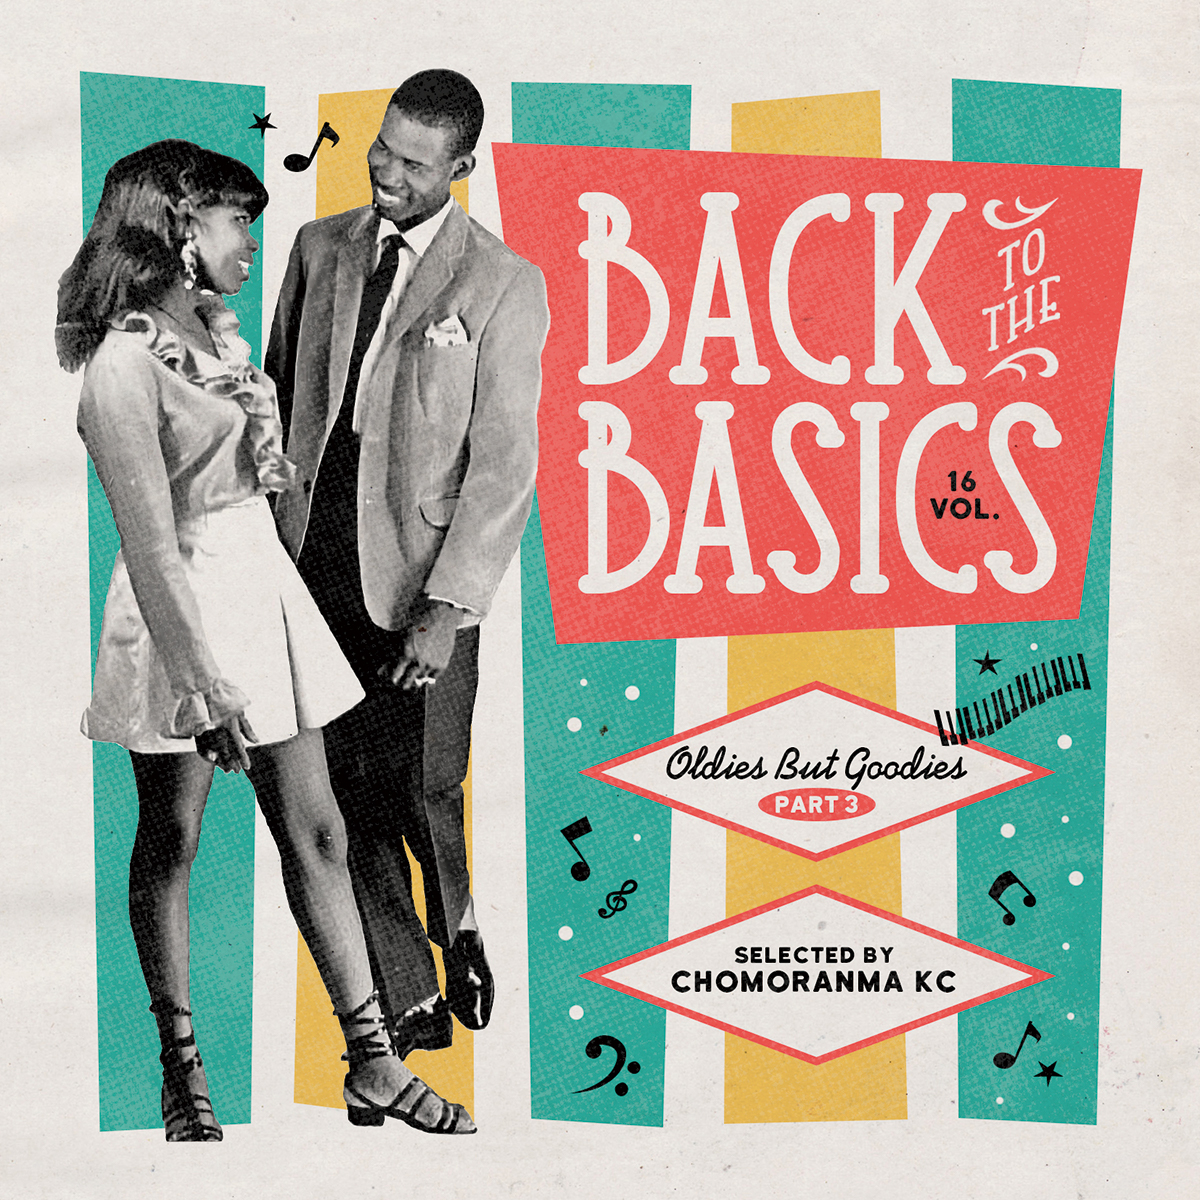 CHOMORANMA SOUND / BACK TO THE BASICS VOL.16 -Oldies But Goodies Part.3-